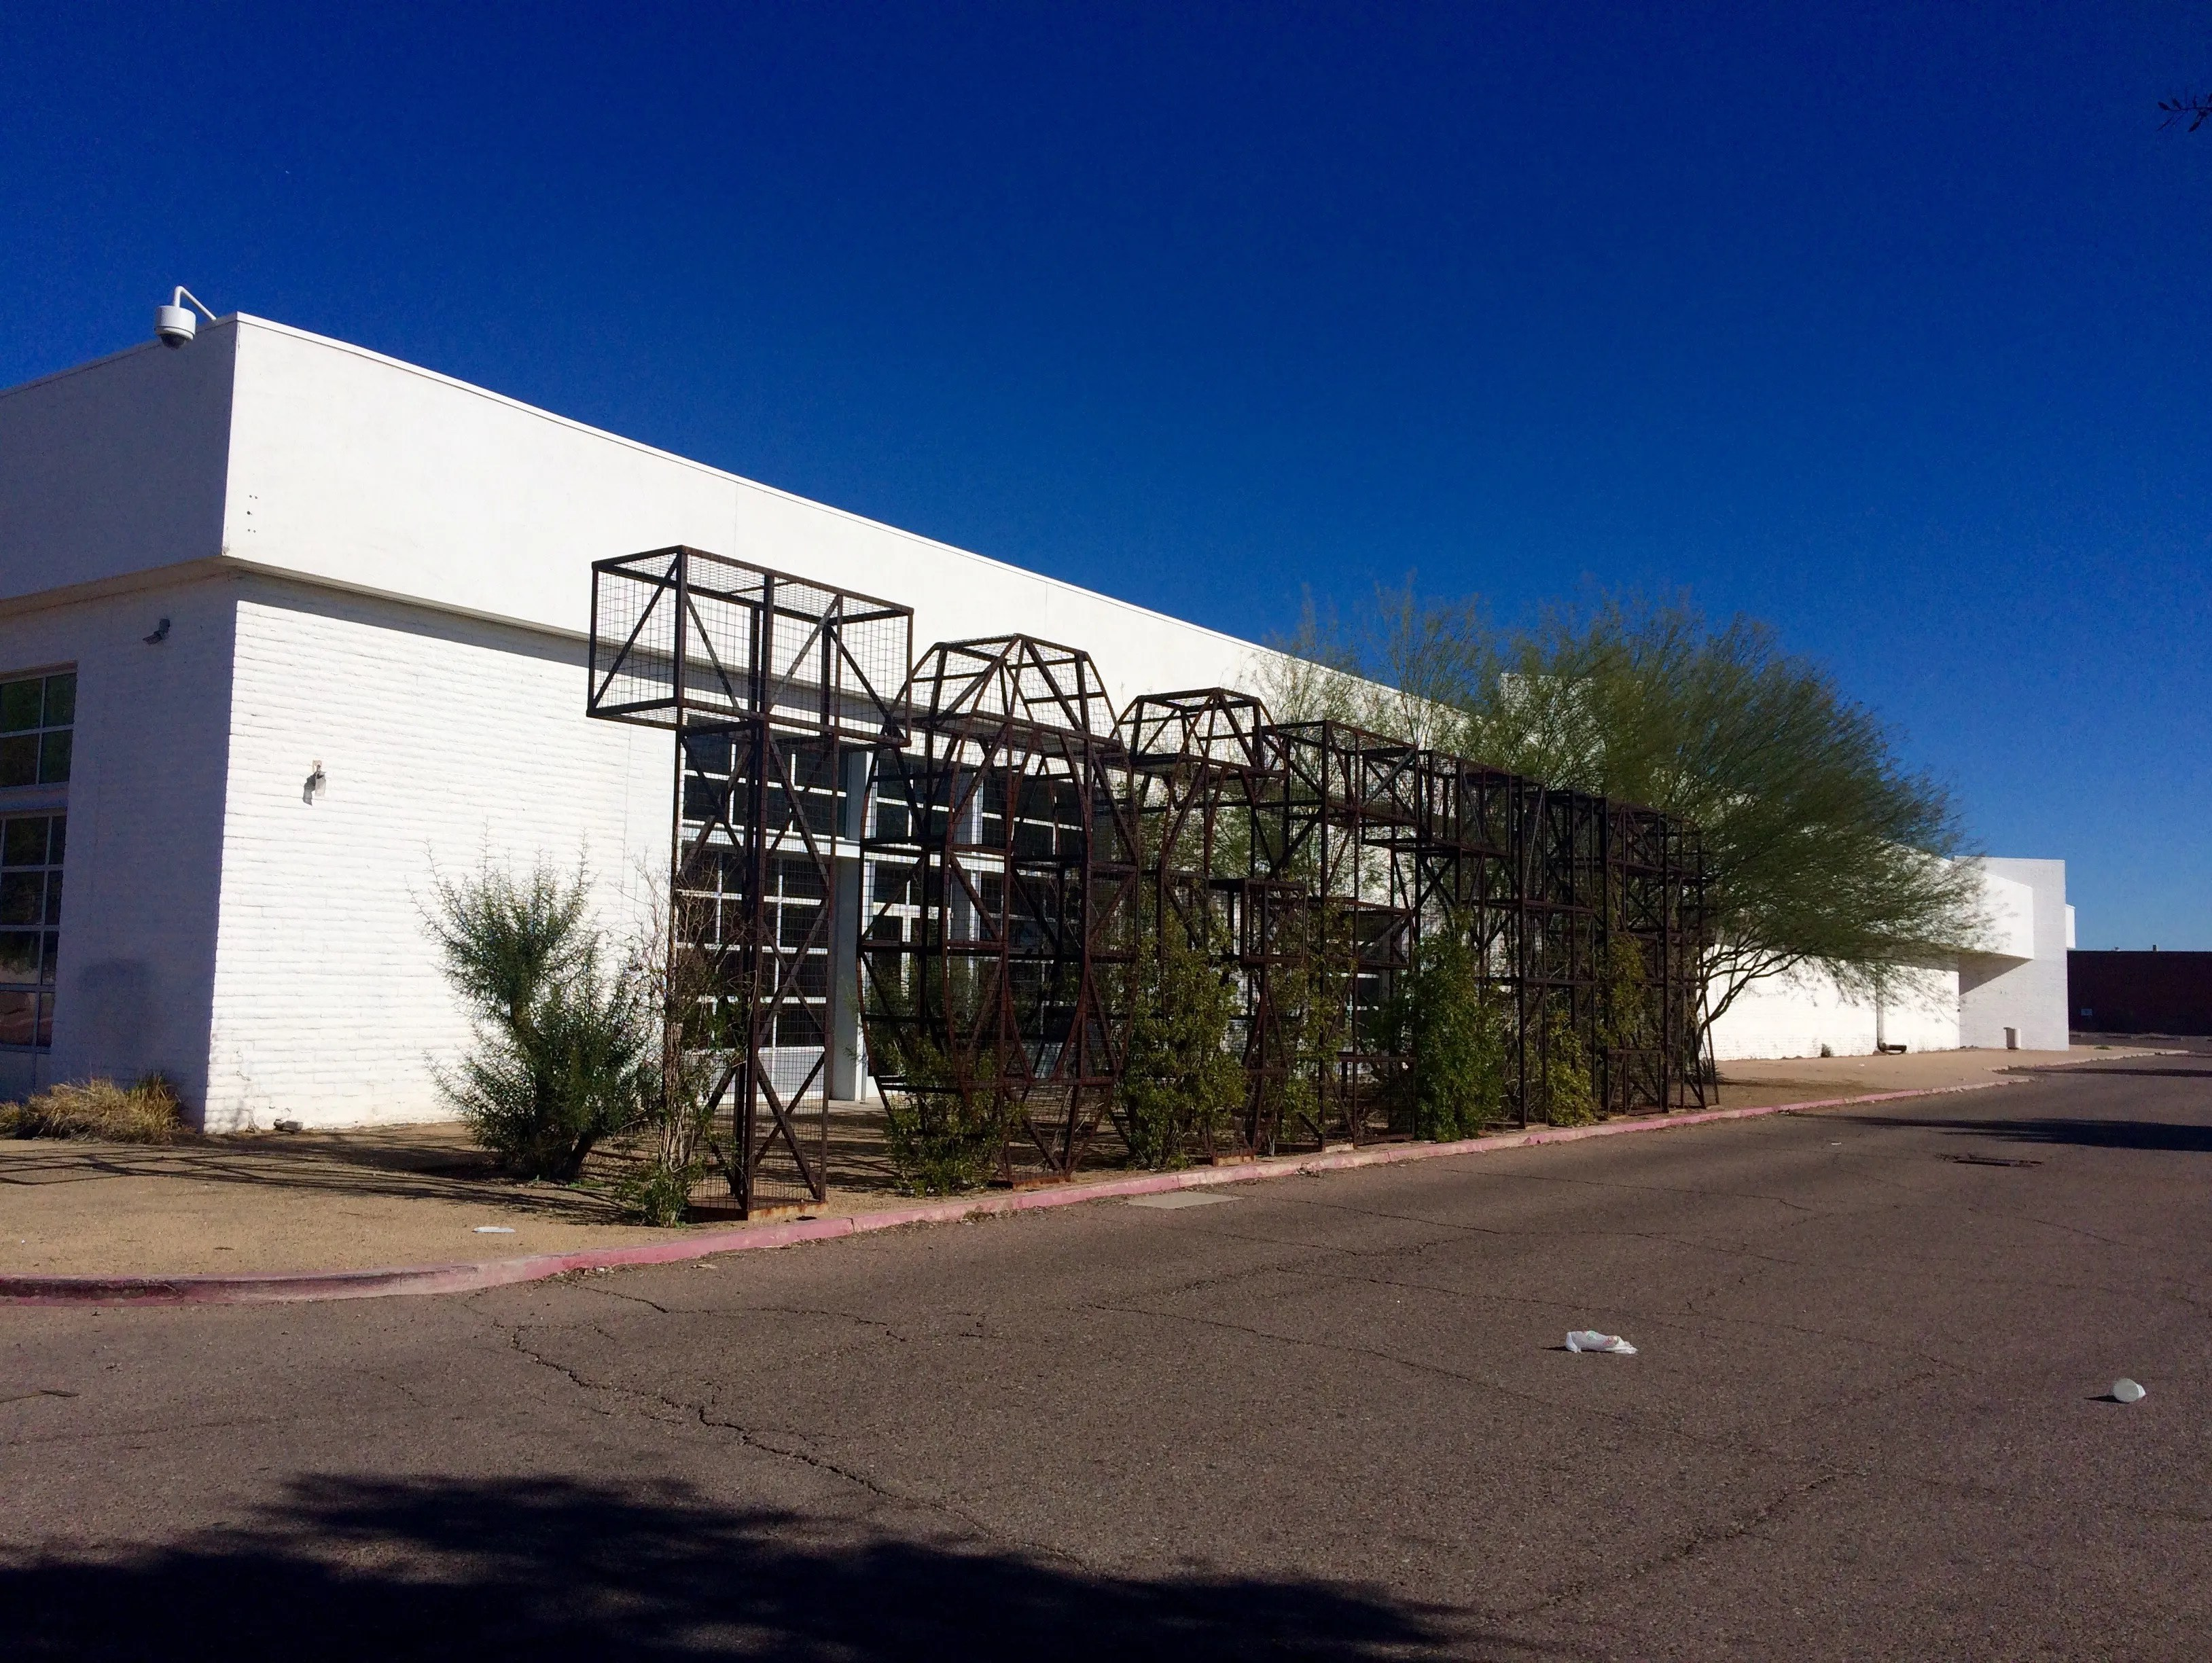 Mesa City Council split over 27 million purchase of old Mervyns building